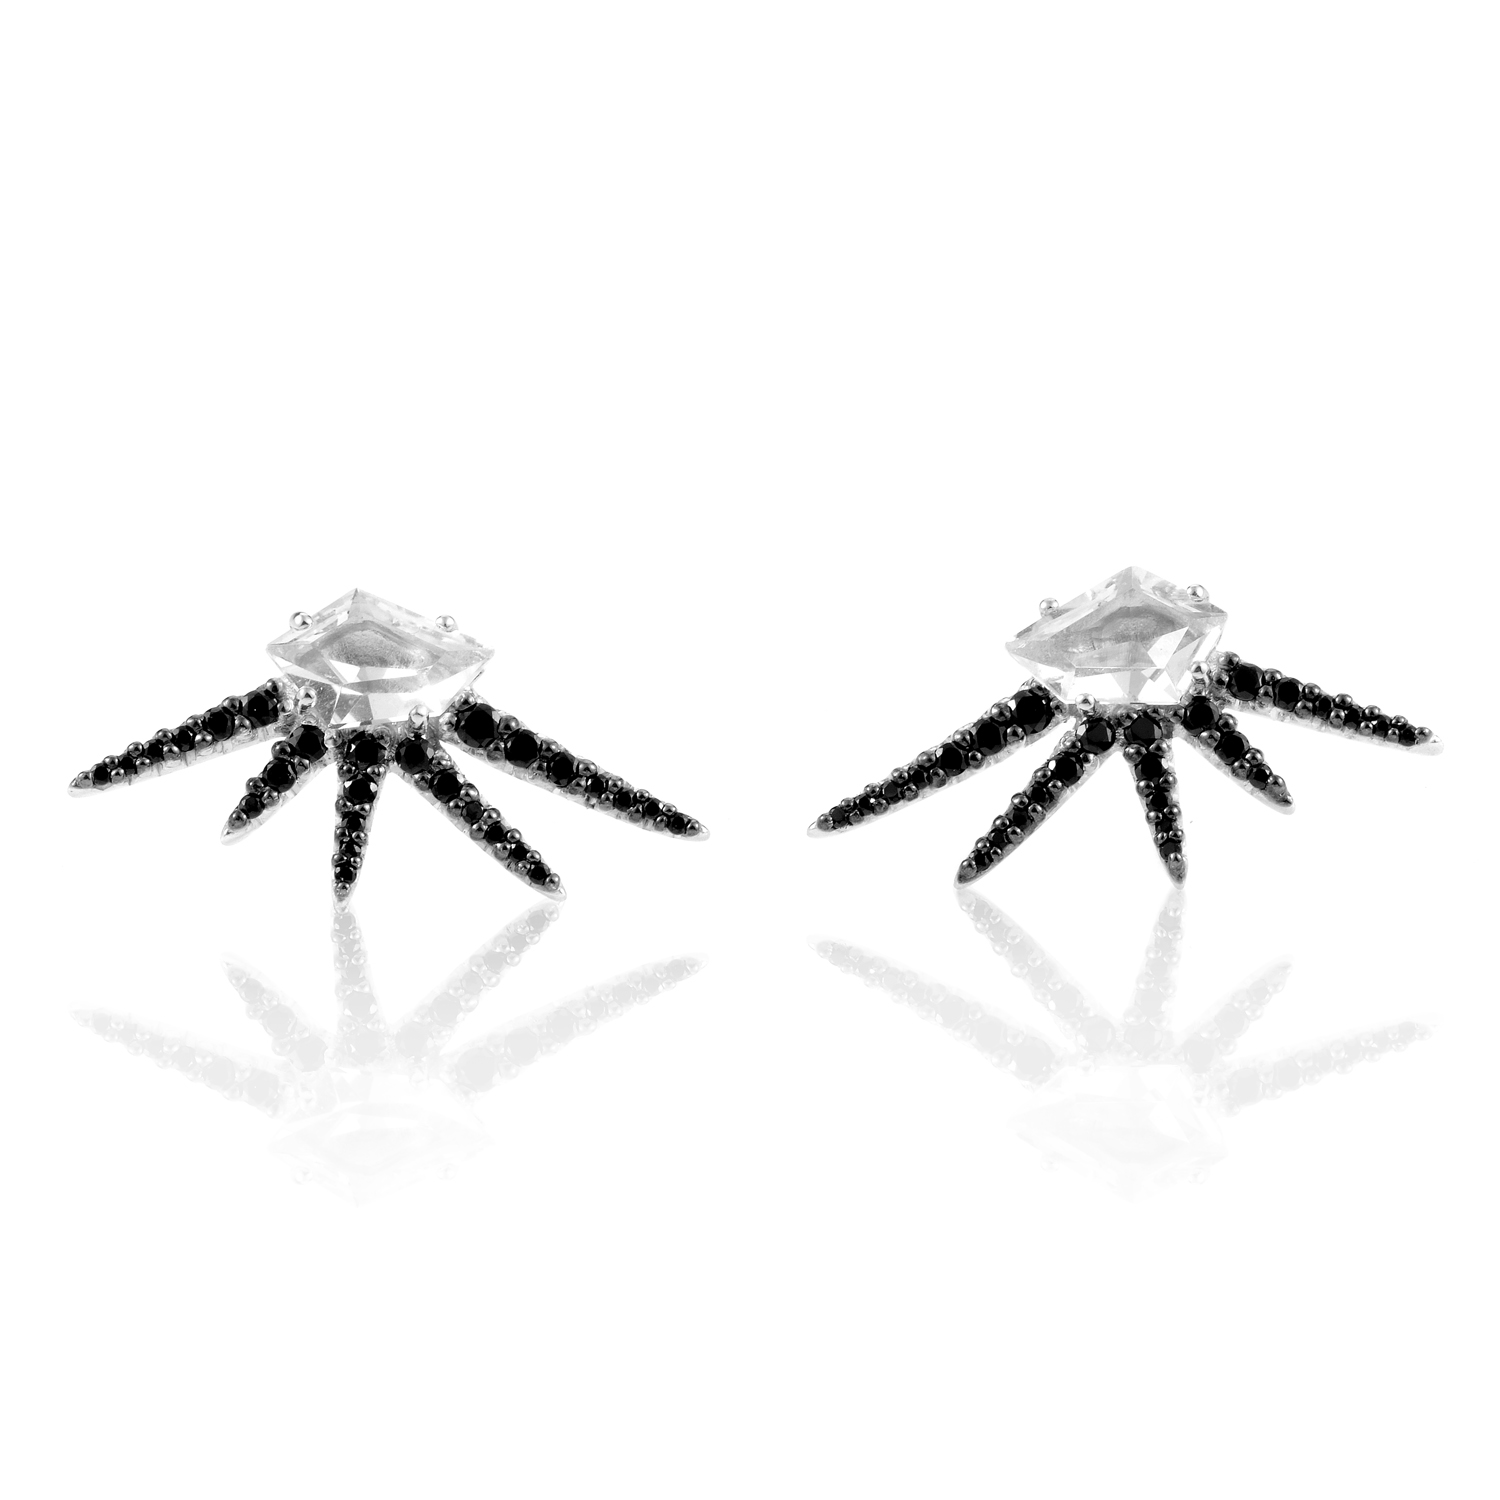 Women's Sterling Silver Black Spinel & Quartz Earrings FX53E002